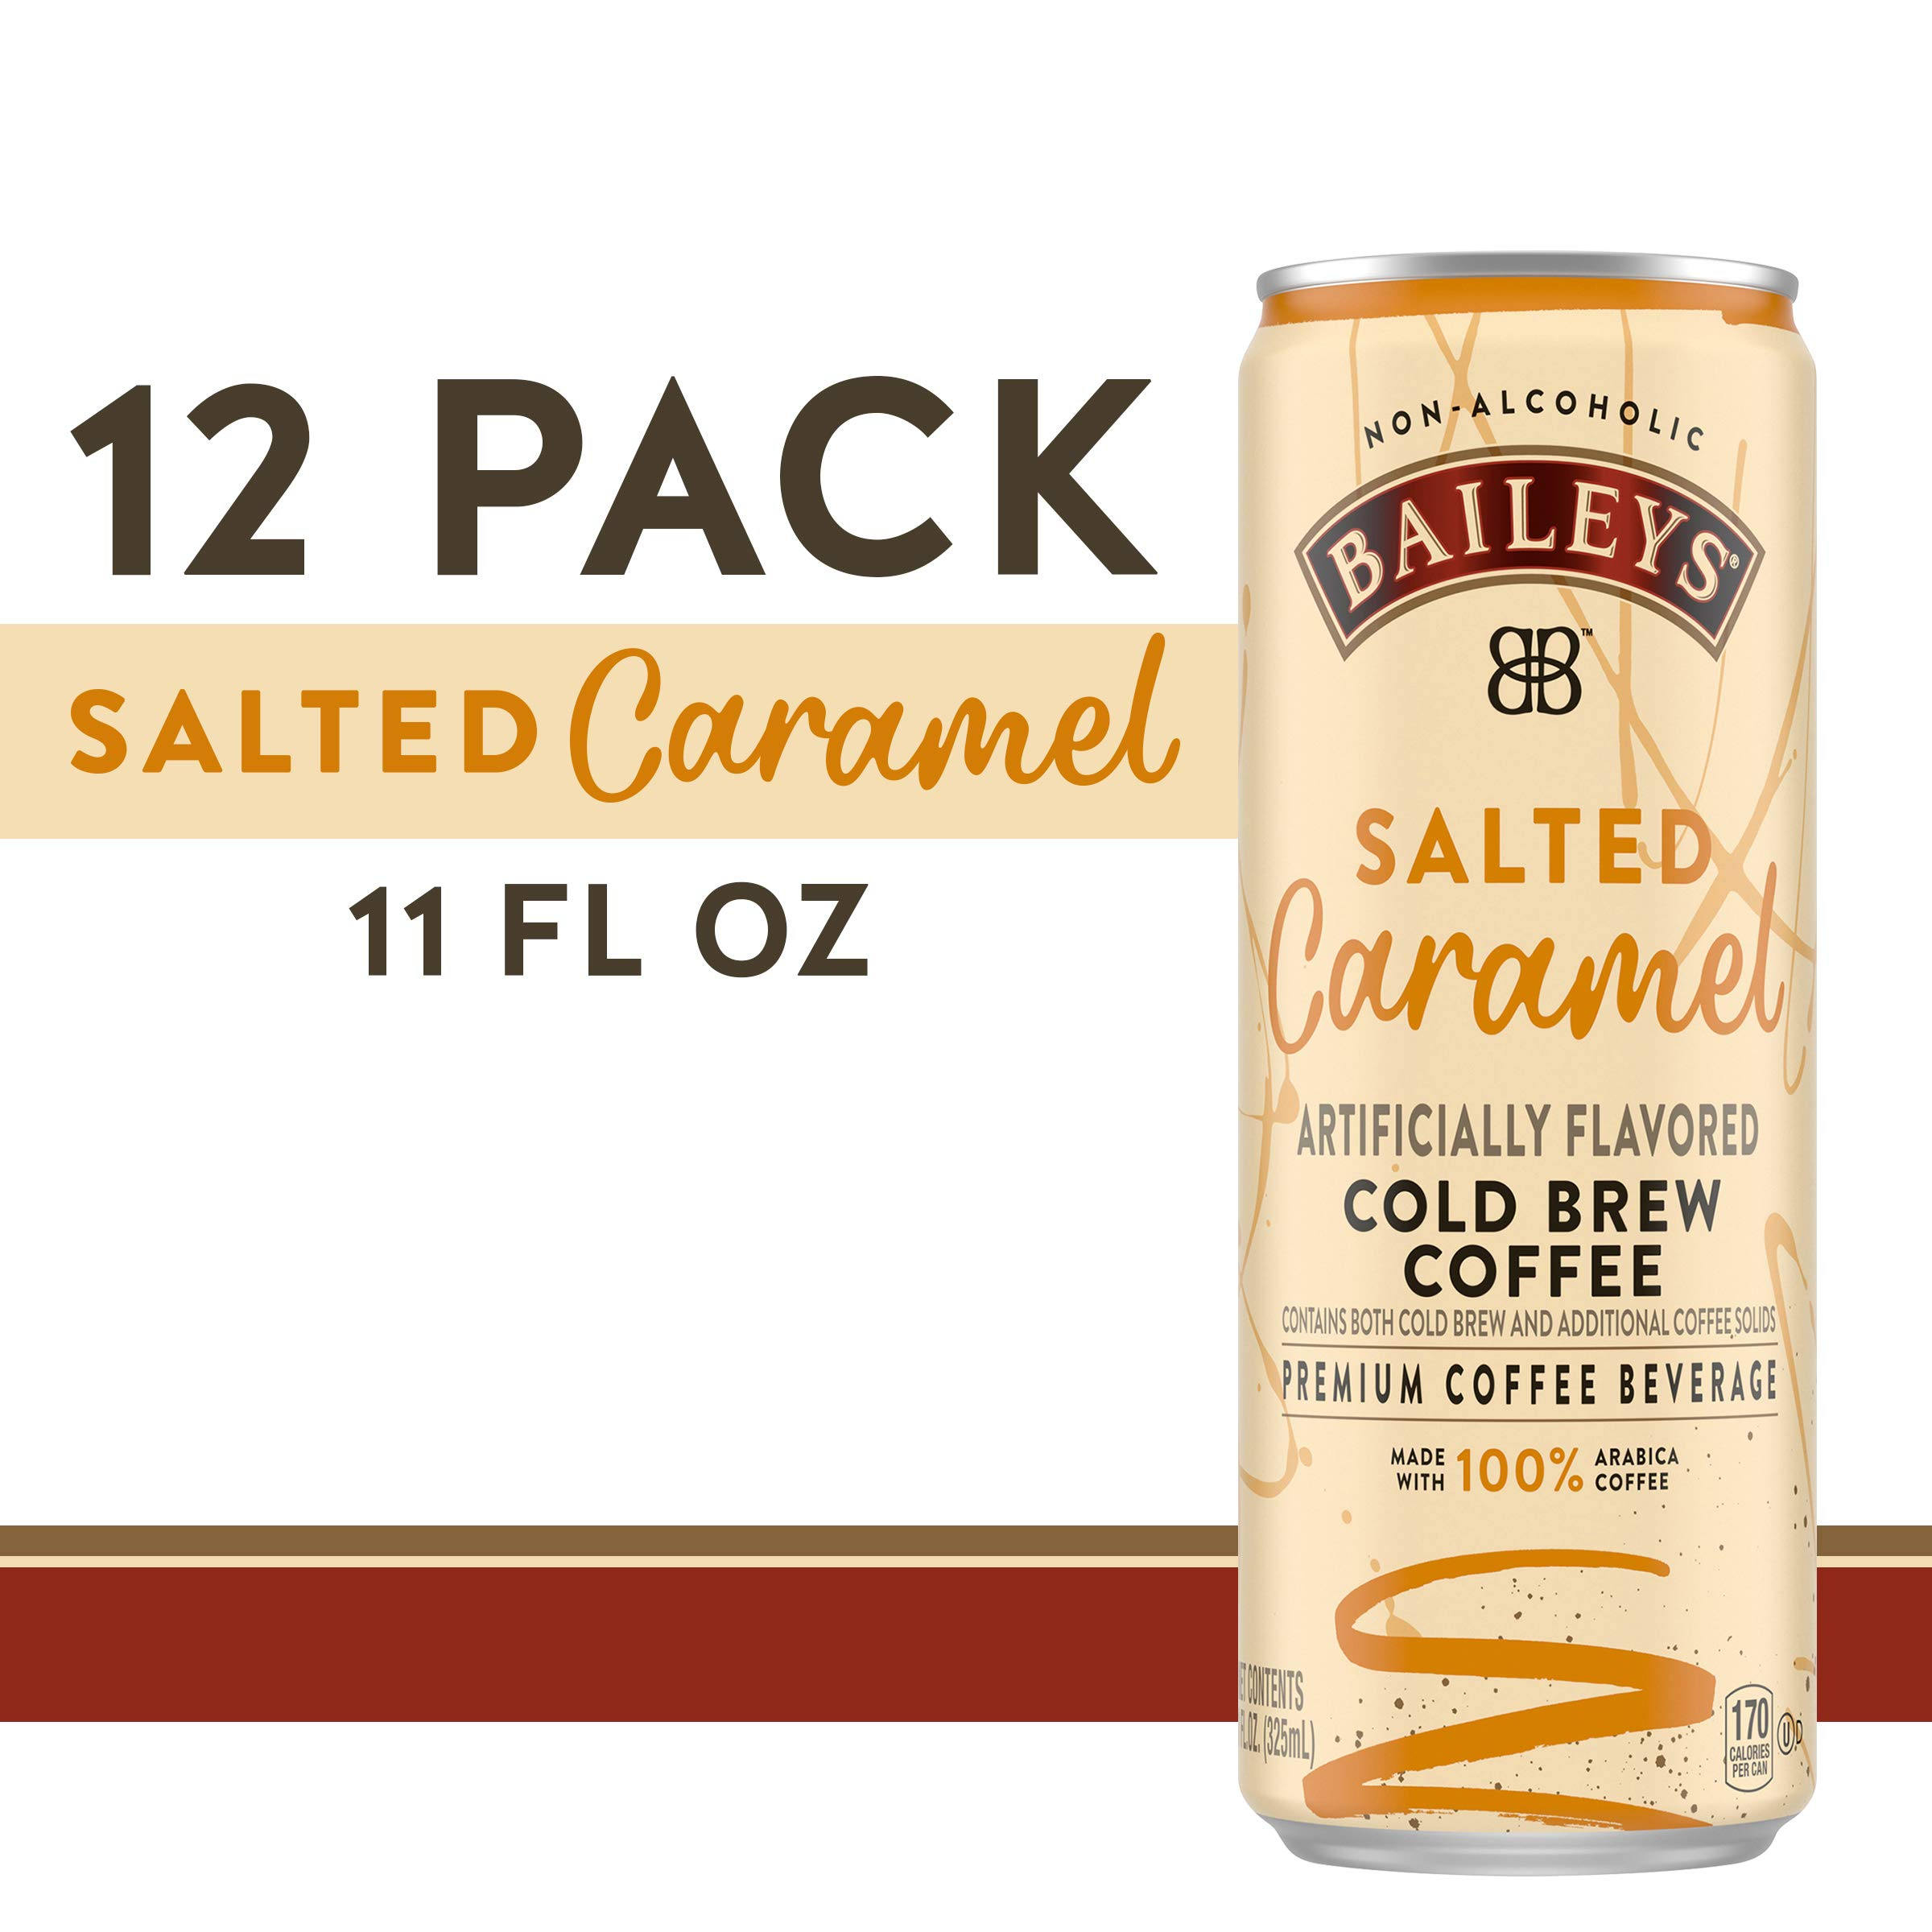 Baileys Non-Alcoholic Salted Caramel Flavored Cold Brew Coffee, 11 fl oz Can (Pack of 12) by BAILEYS